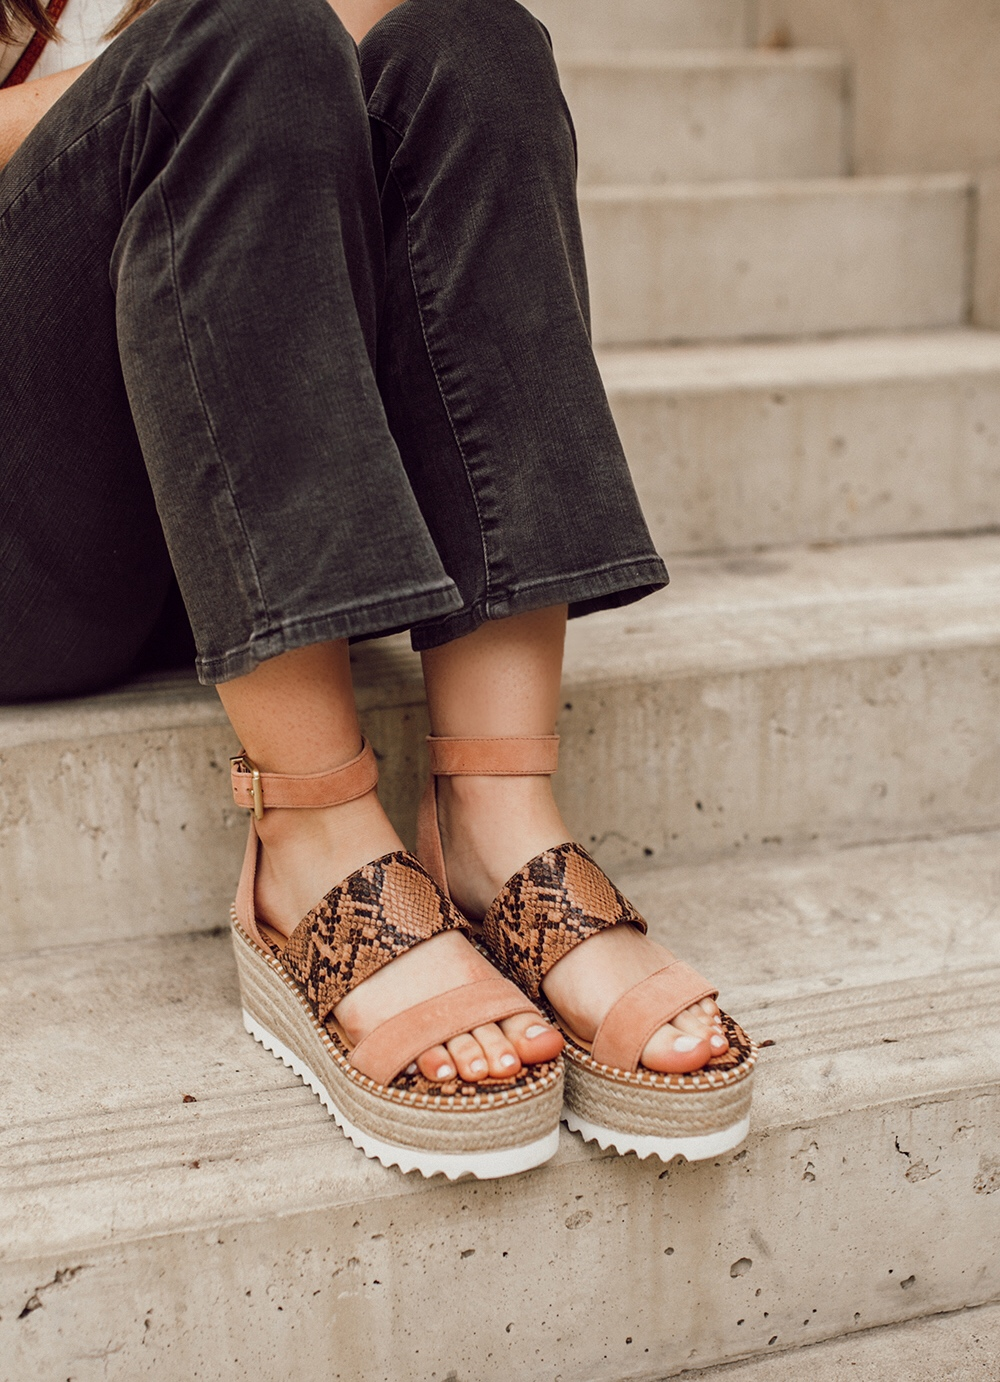 livvyland-blog-olivia-watson-austin-texas-fashion-style-blogger-crown-vintage-spring-peach-wedges-shoes-affordable-dsw-2